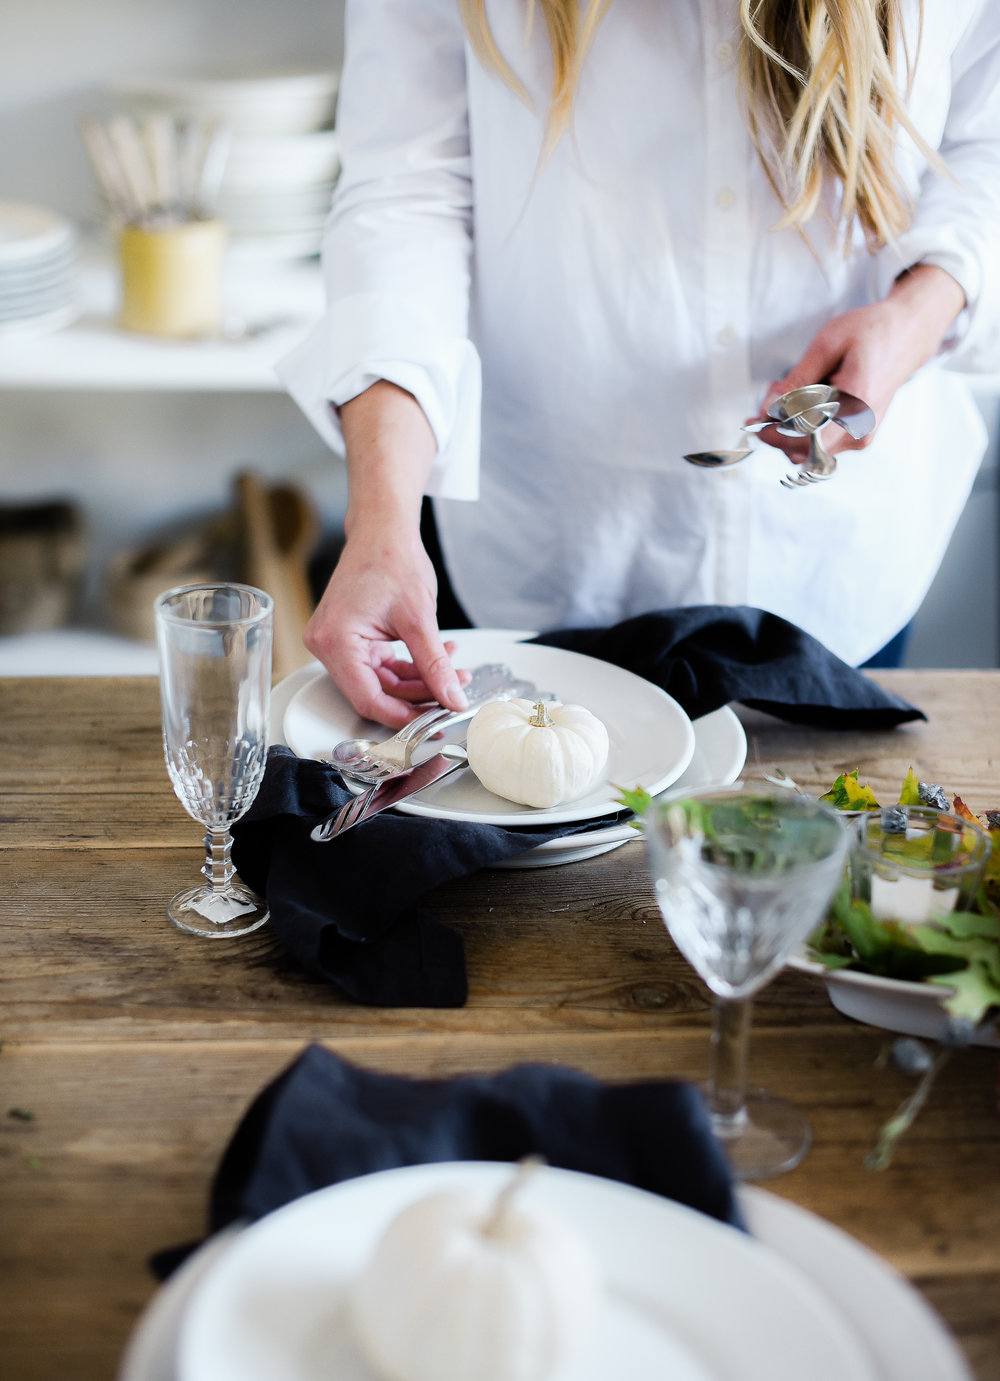 A collected table. - Mix & match glassware, flatware, and plates for a collected table.Simply keep the general shape and size similar so that there is a single thread that ties the table together!